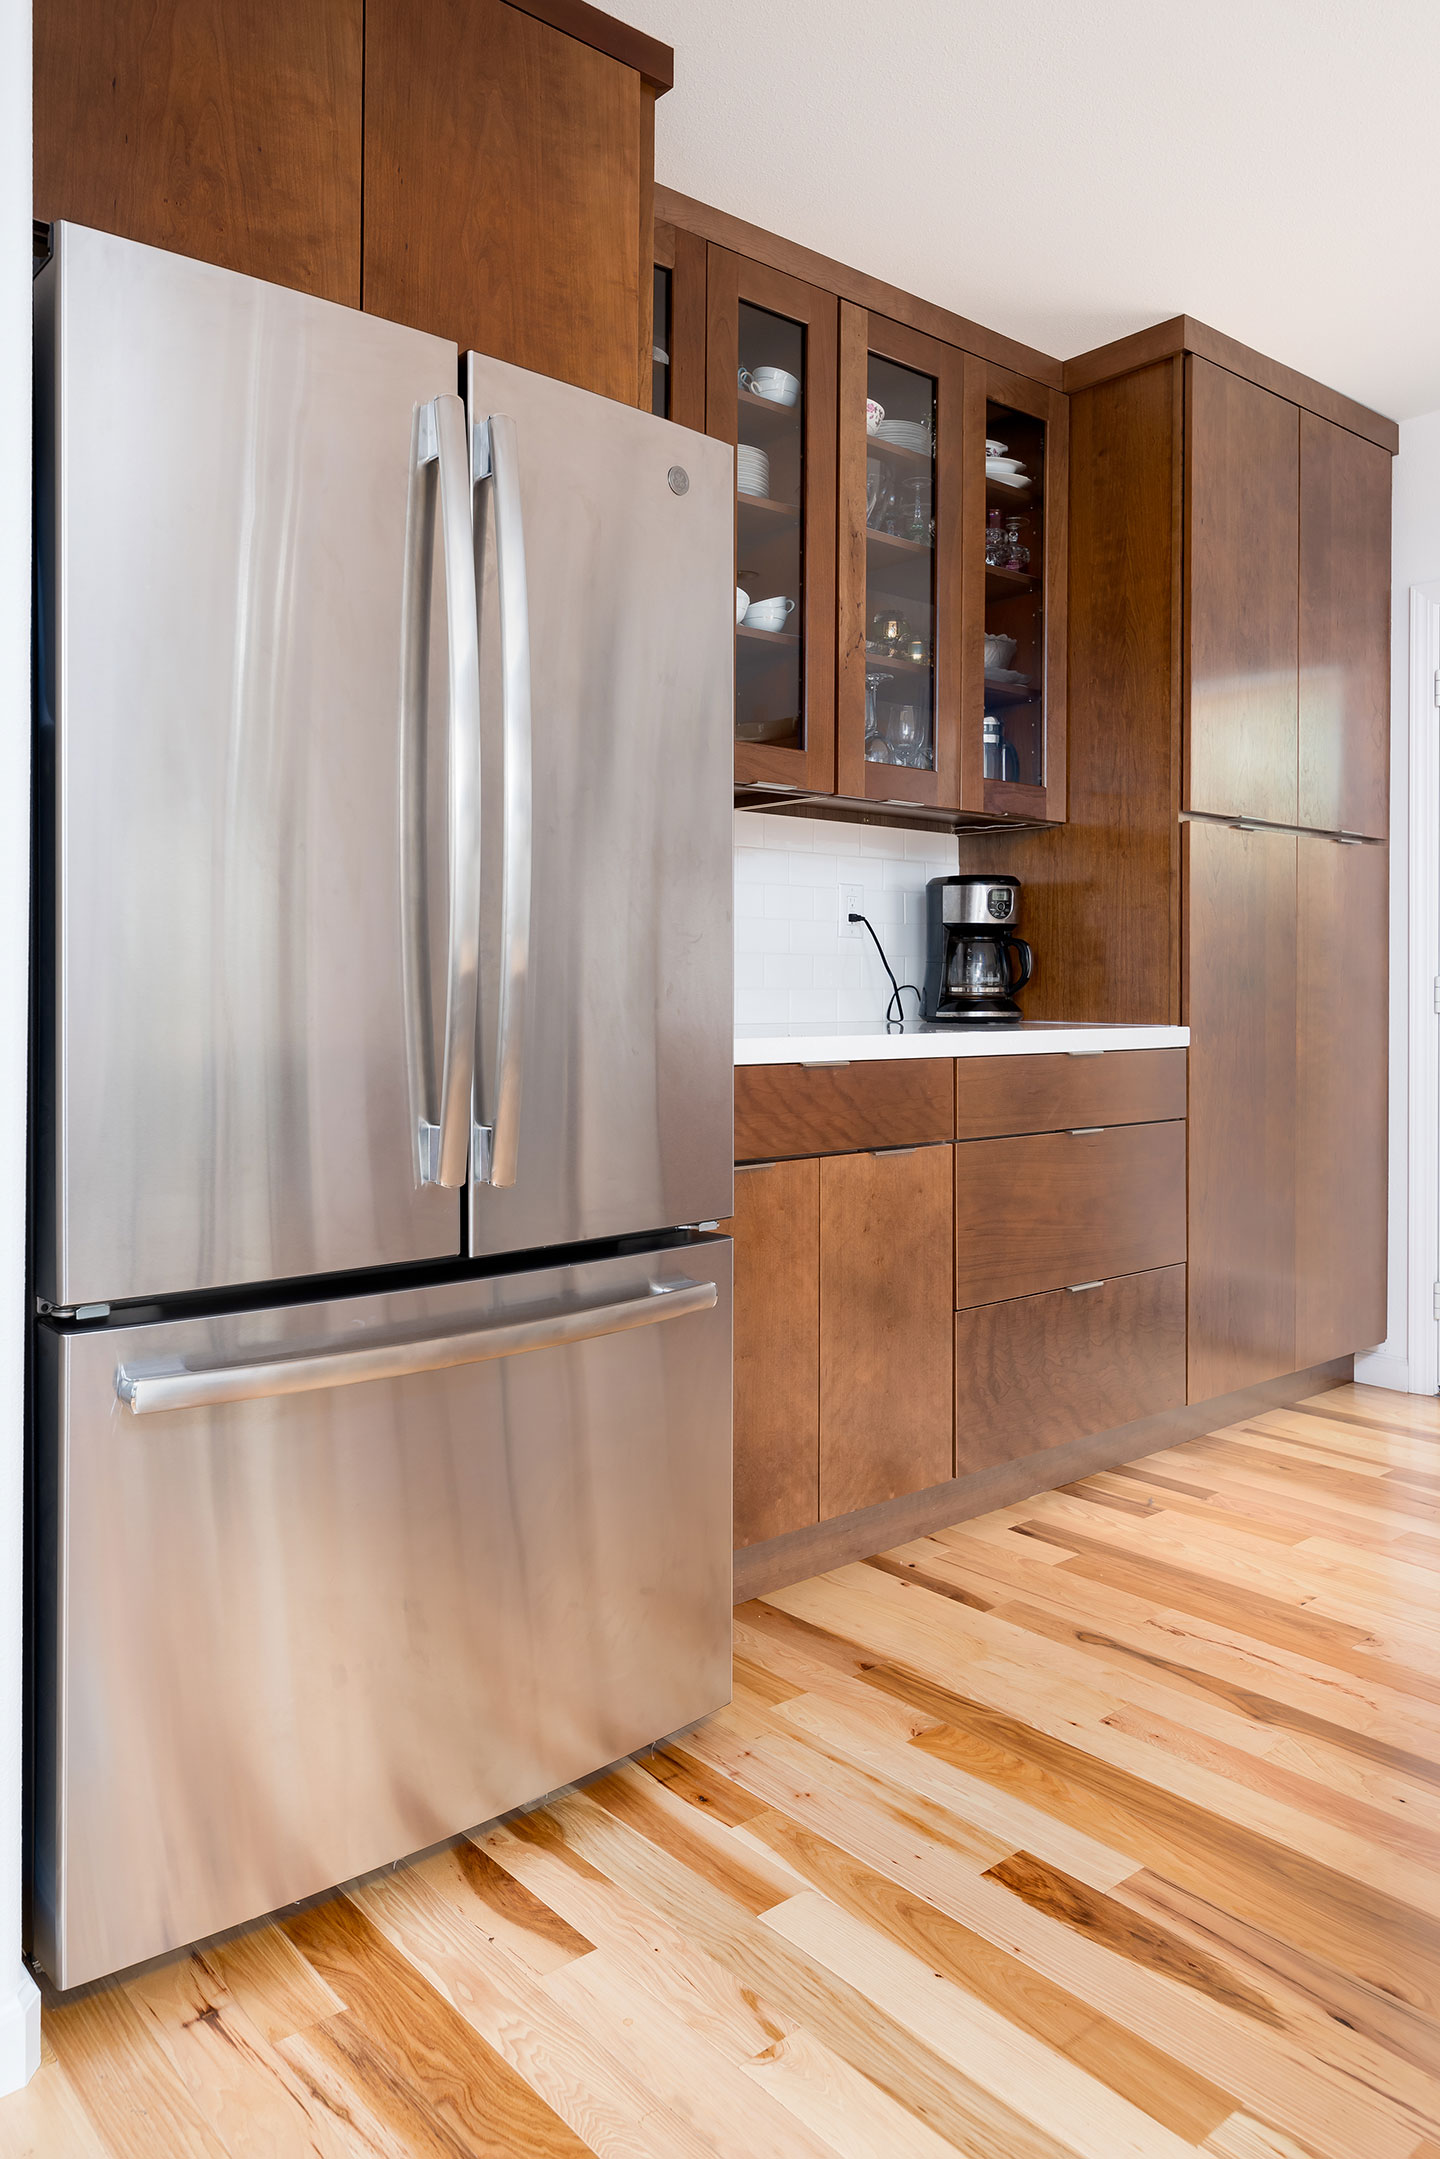 Floor to ceiling cabinets next to the coffee nook